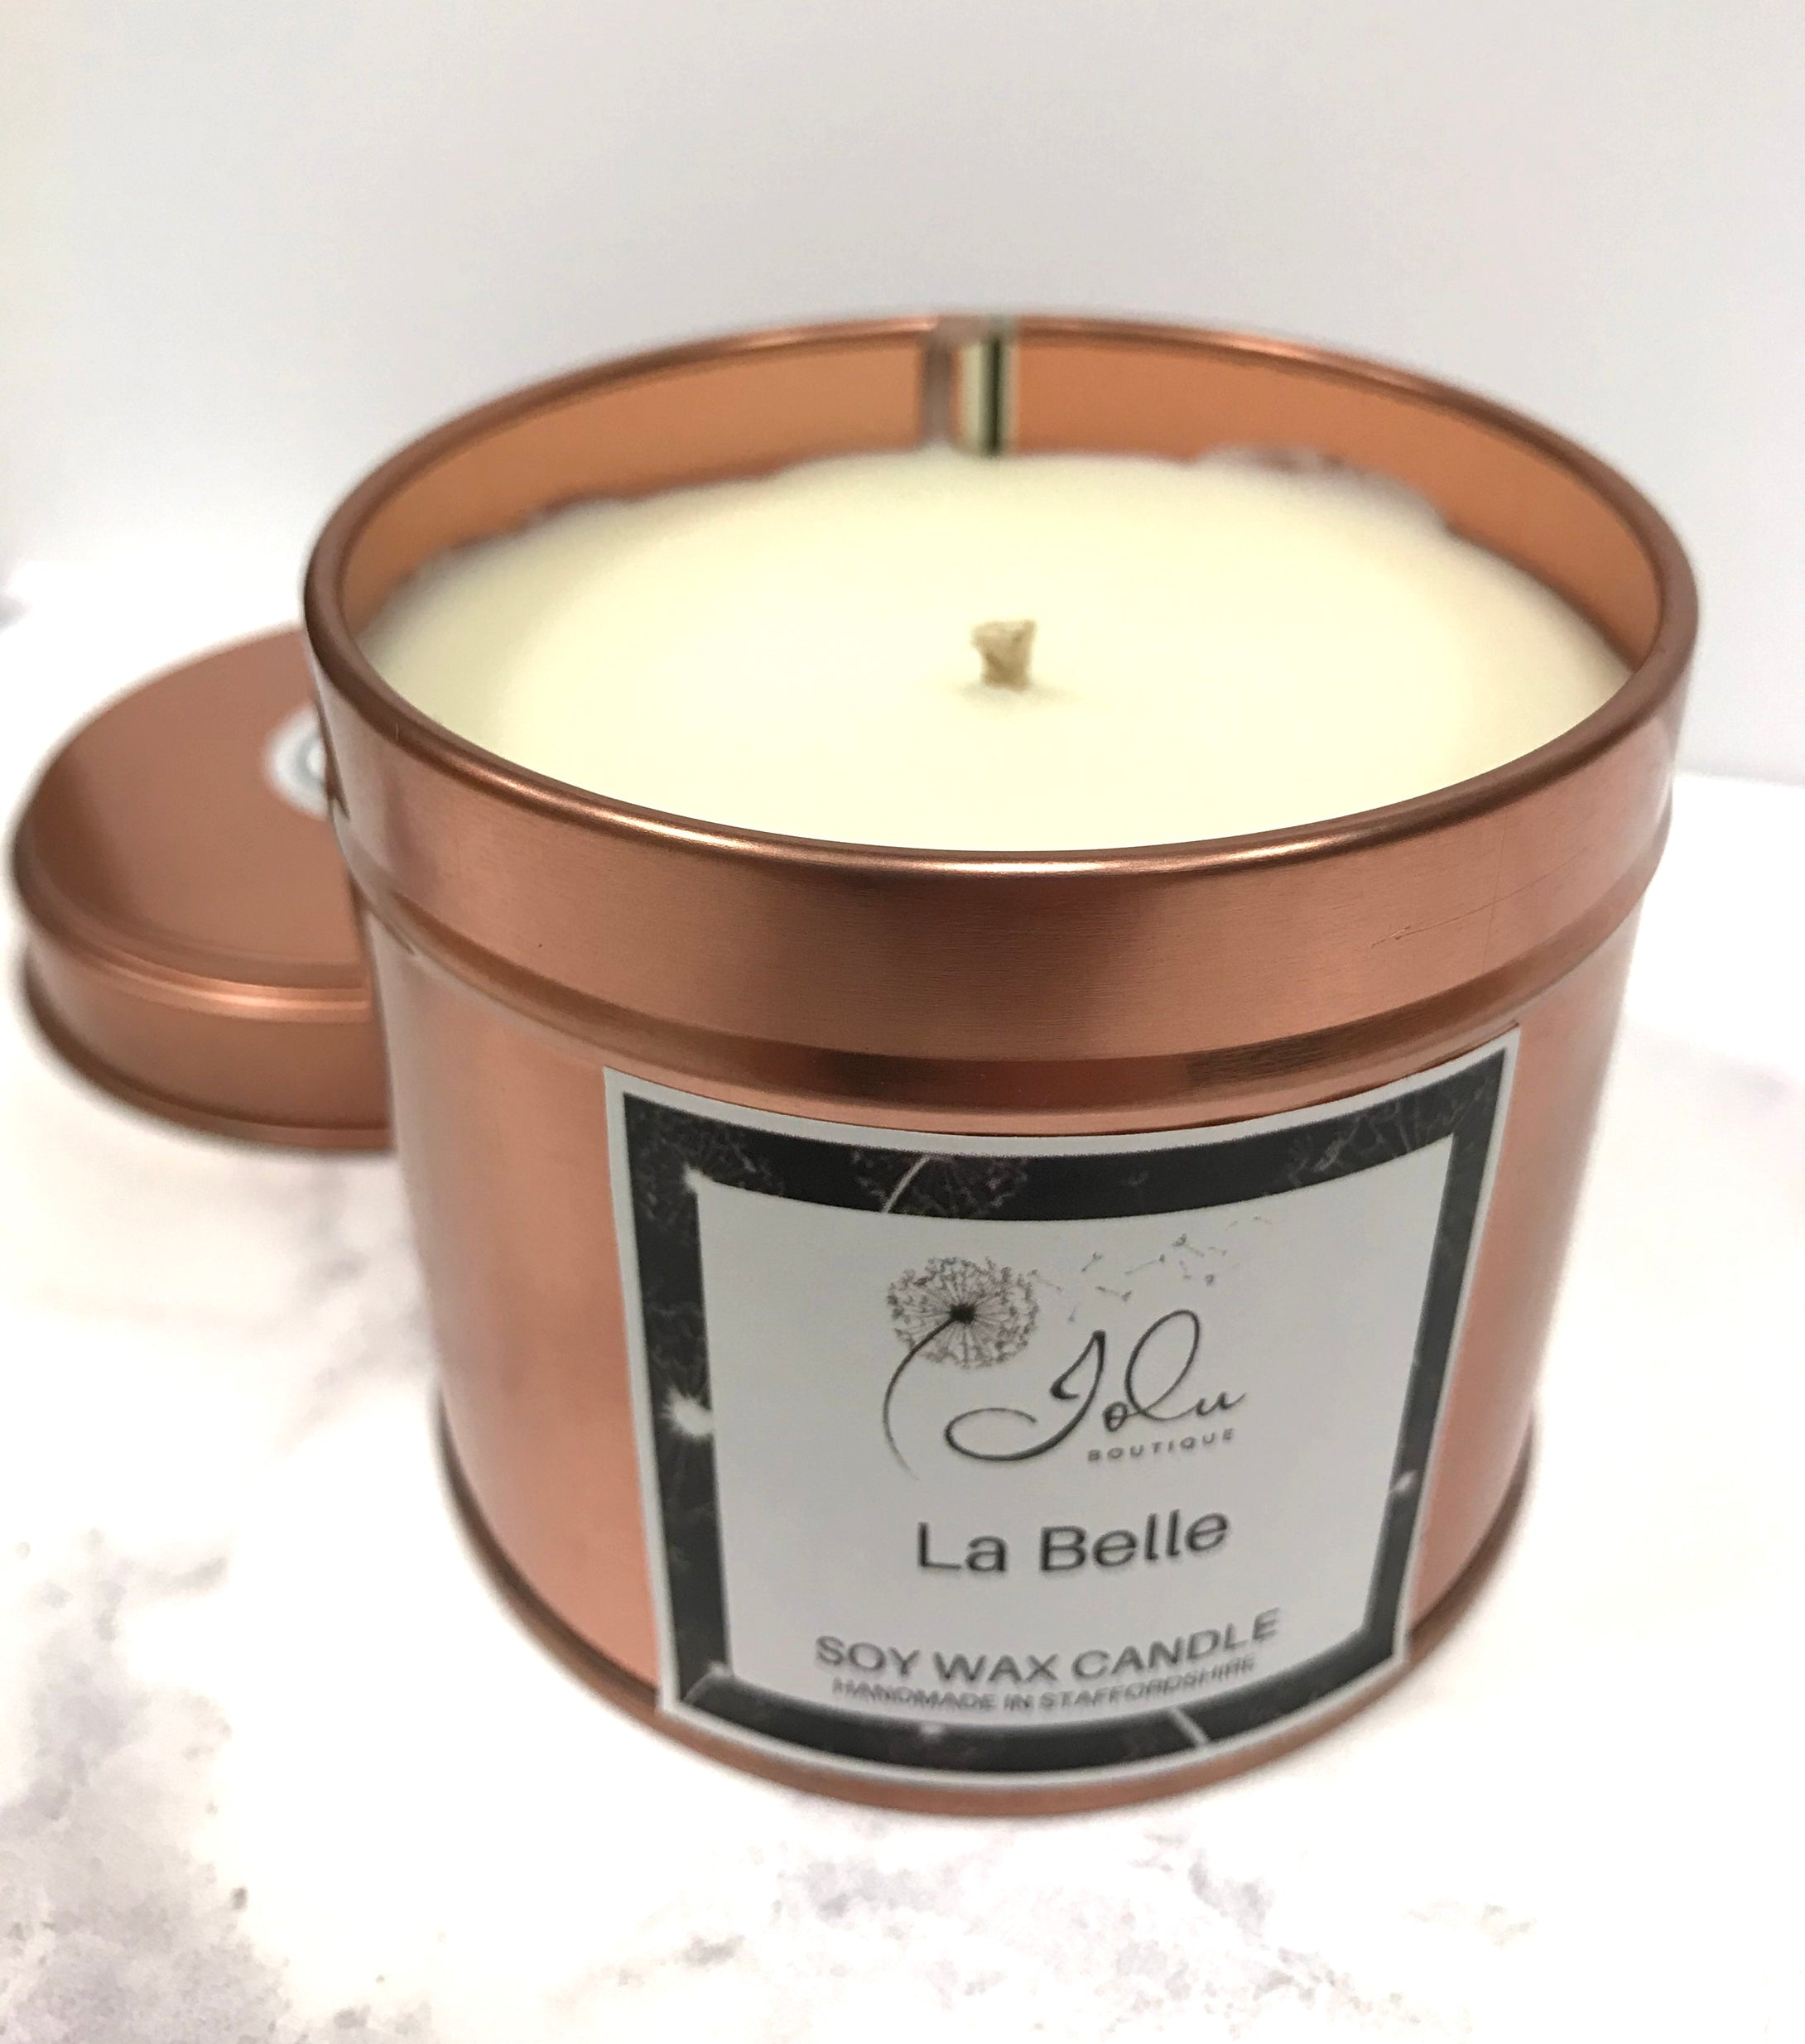 Jolu Boutique La Belle Tinned Soy Wax Candle